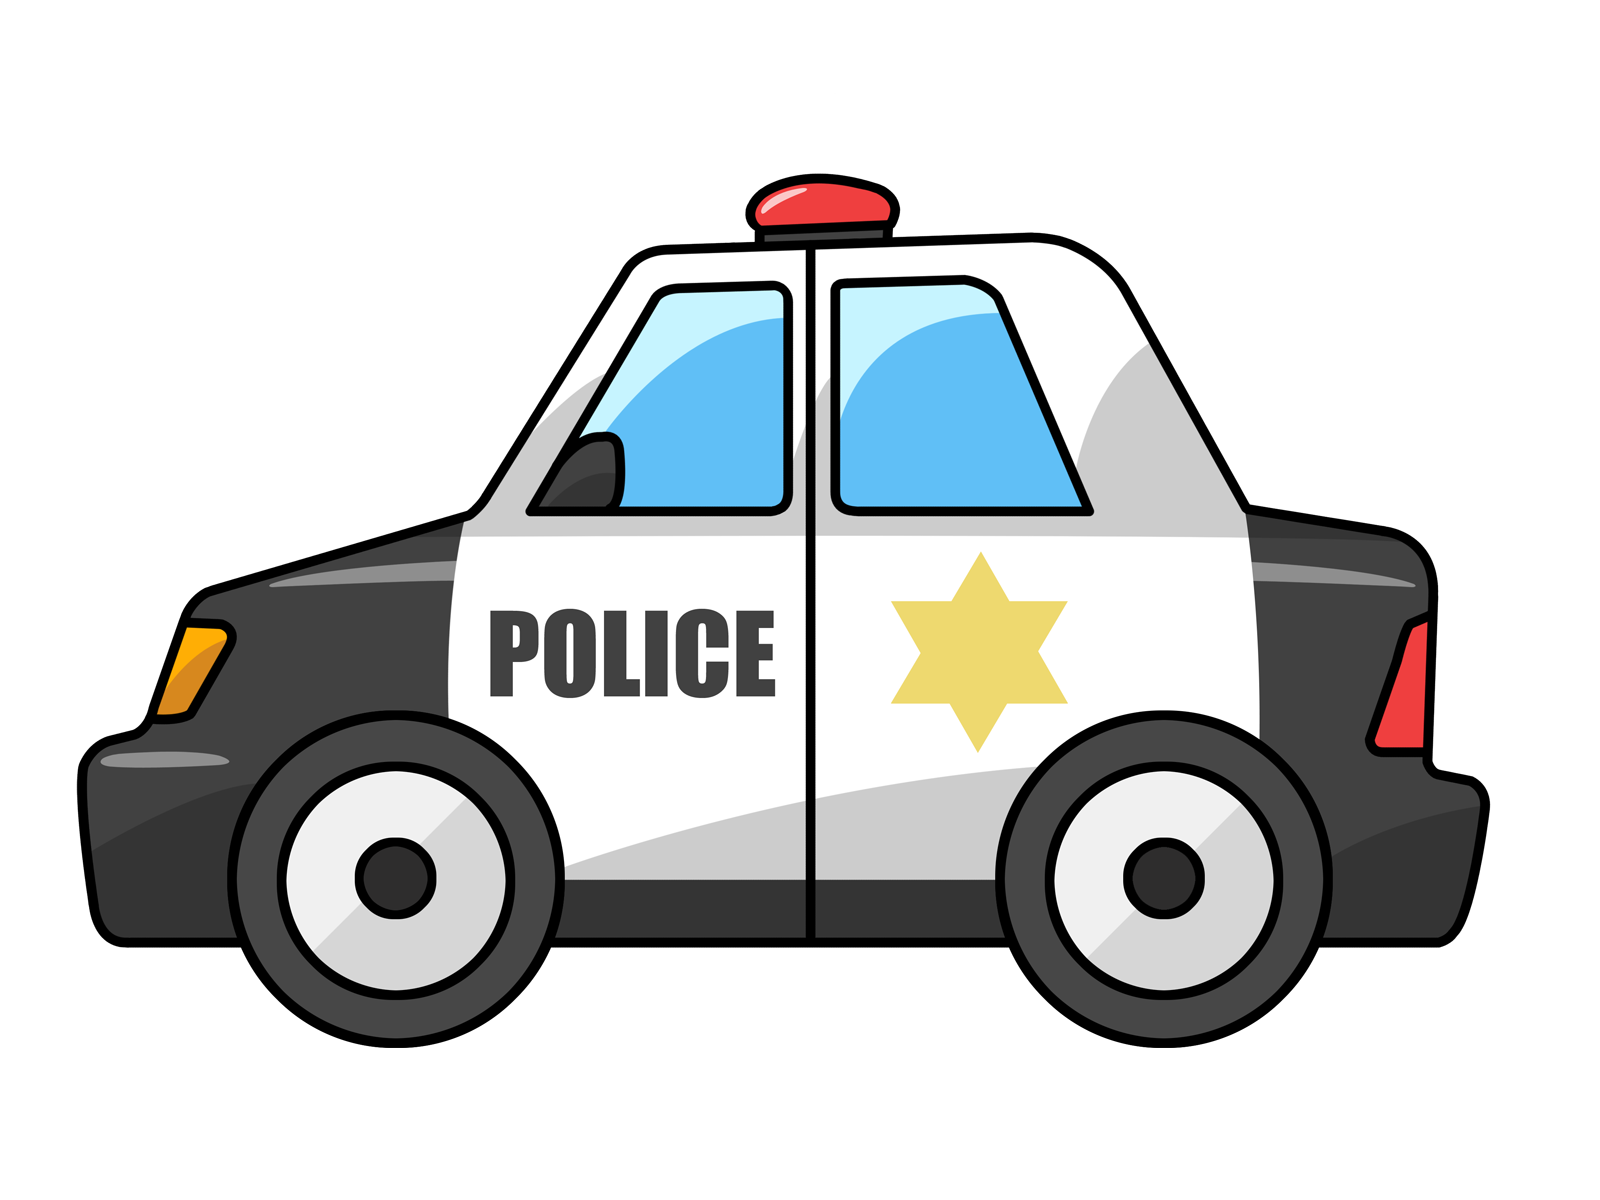 free to use public domain police car clip art clipart best rh pinterest com police station clipart police station clipart png